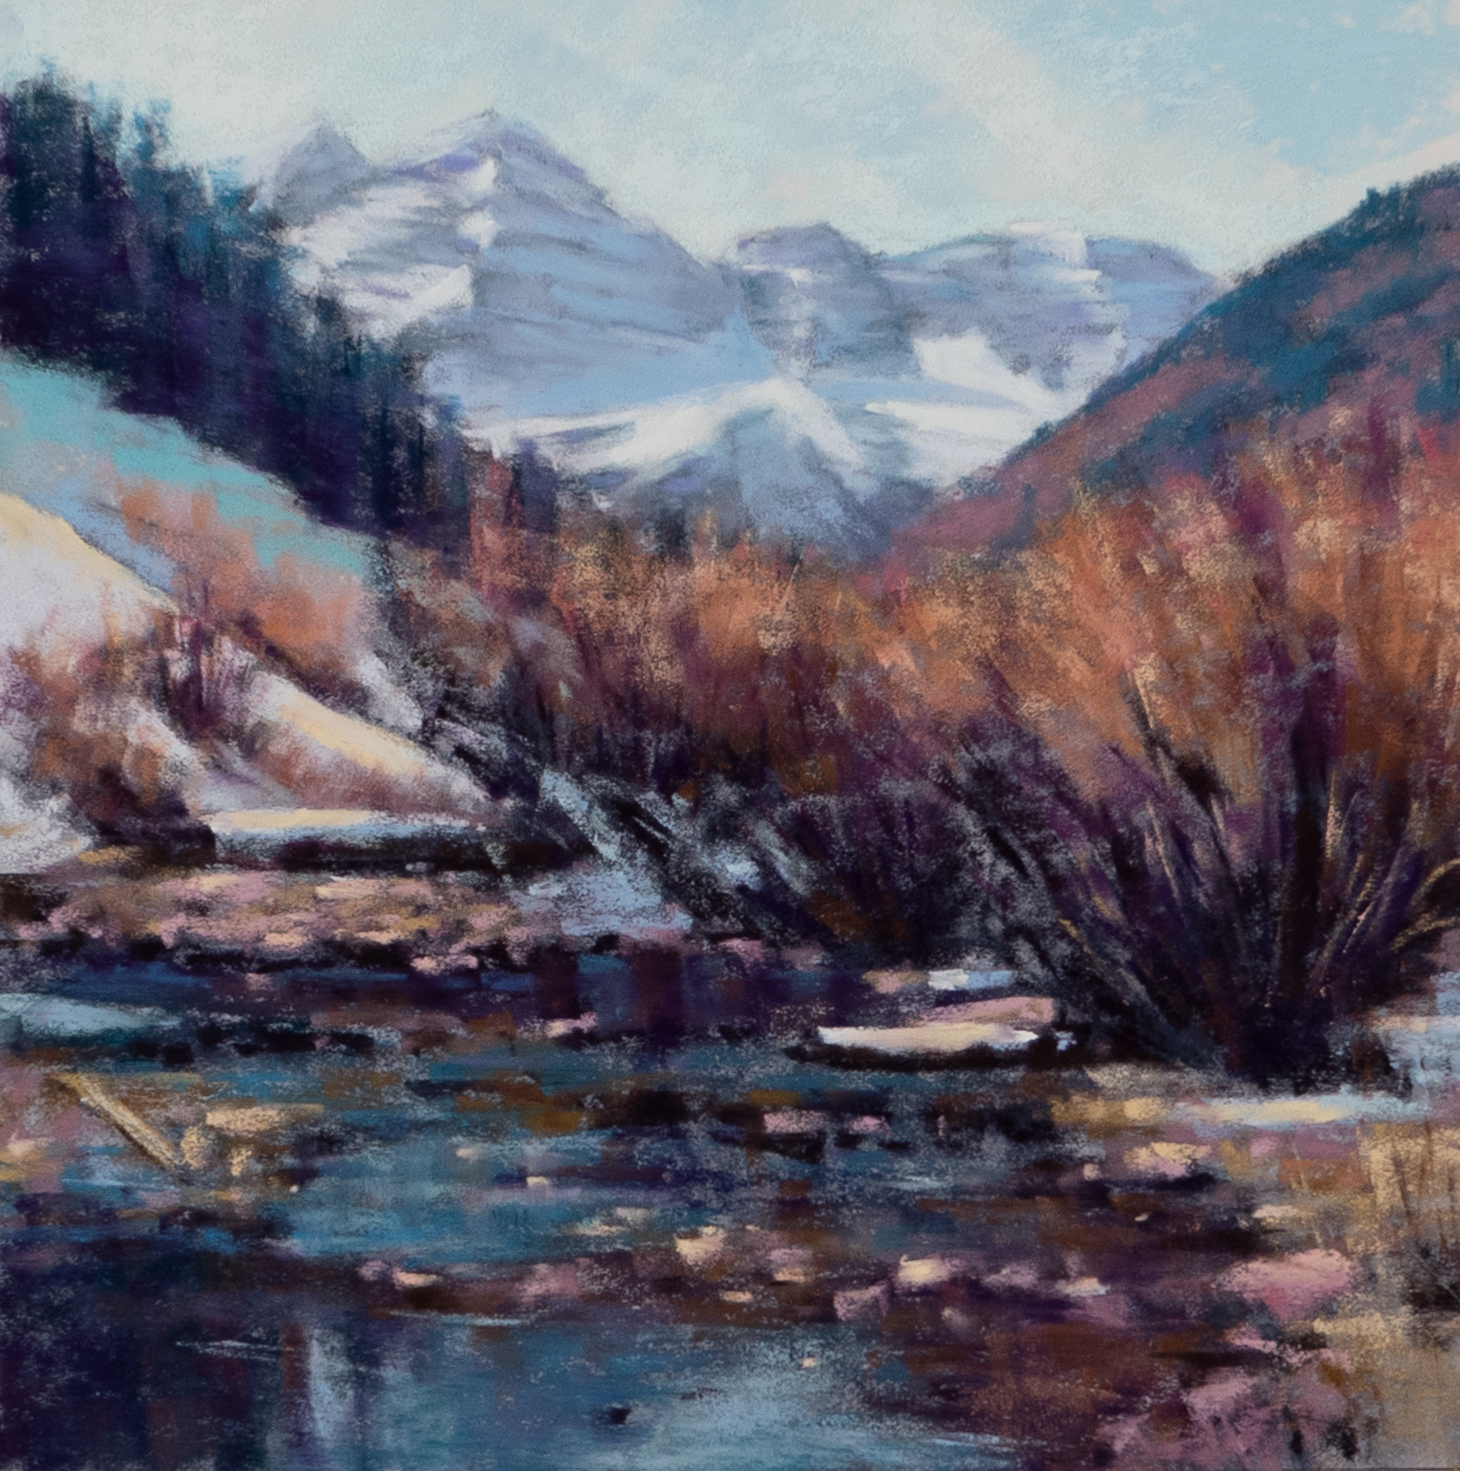 Below the Maroon Bells in Winter Study